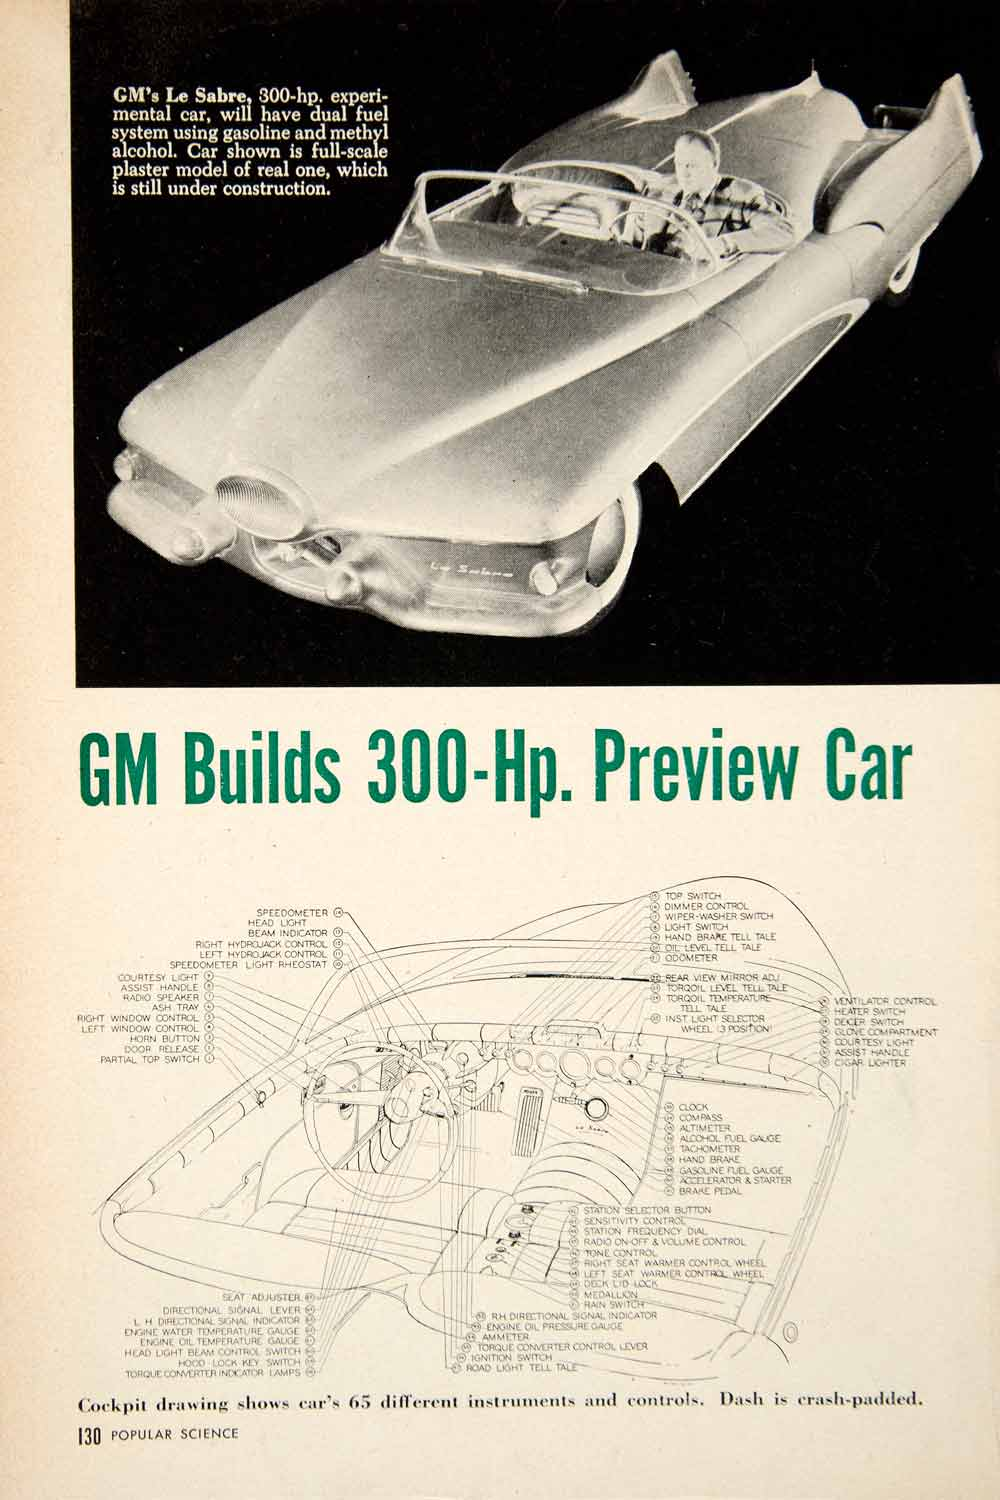 1951 Article Le Sabre GM General Motors Automobile Futuristic Headlight Car PSC2